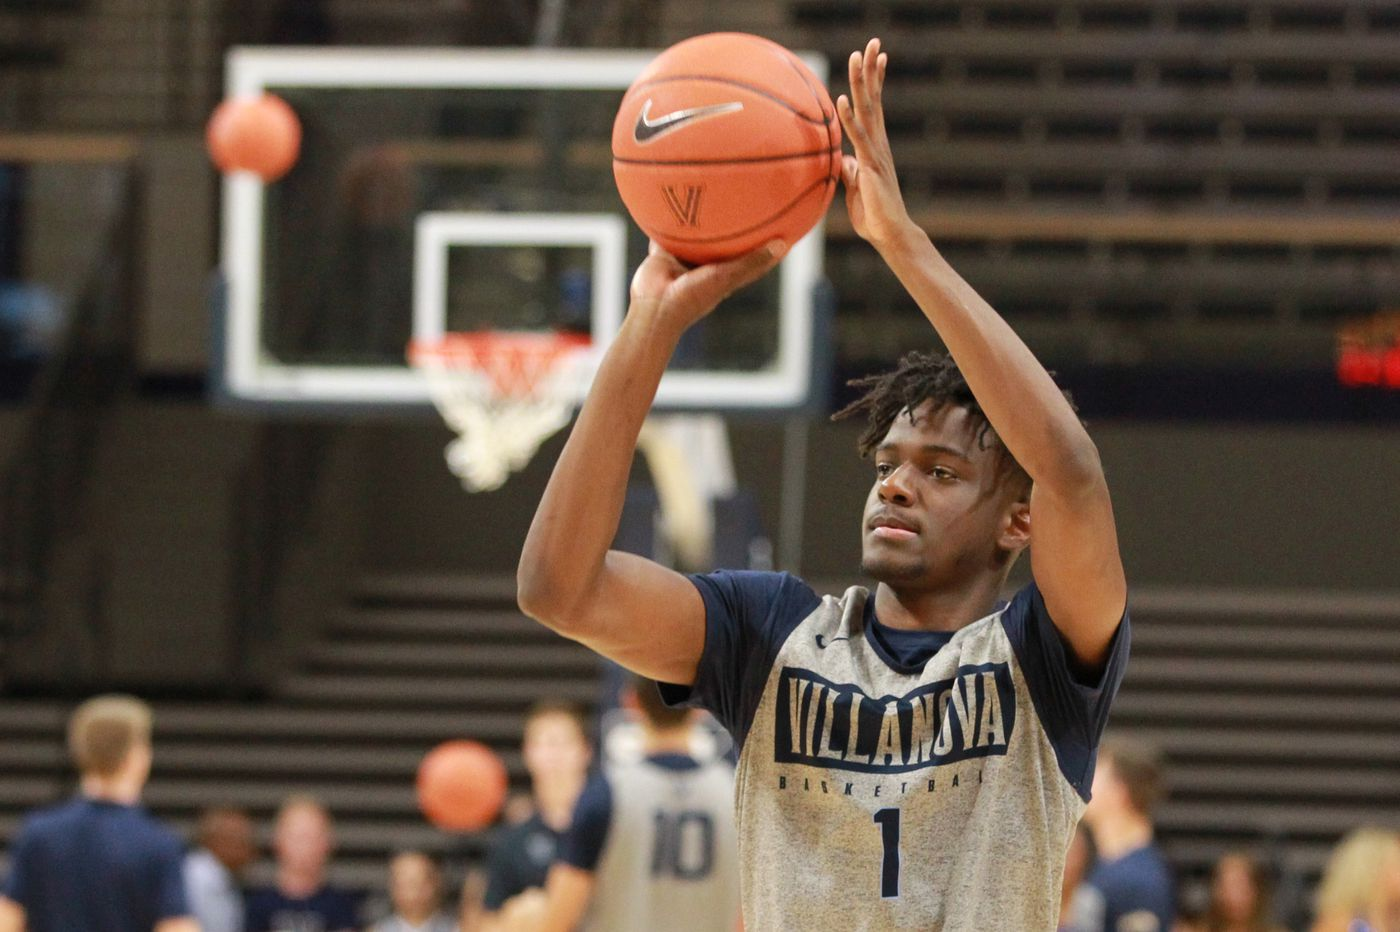 Highly touted Villanova guard Bryan Antoine cleared to play in game competition